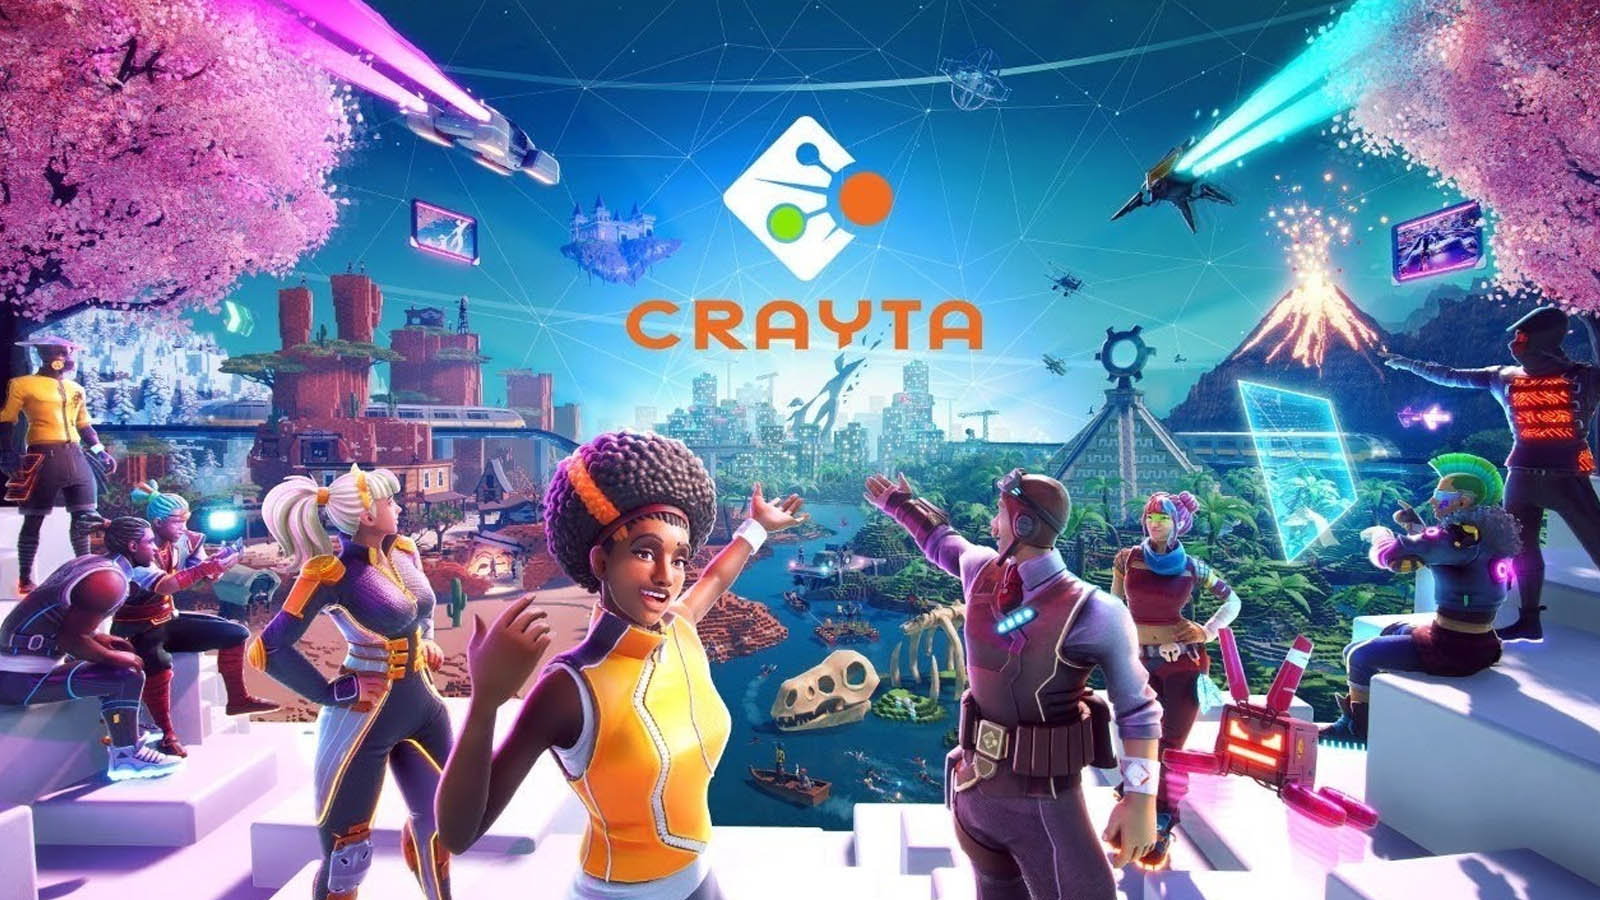 Crayta: Starter Edition is now completely free to play on Stadia